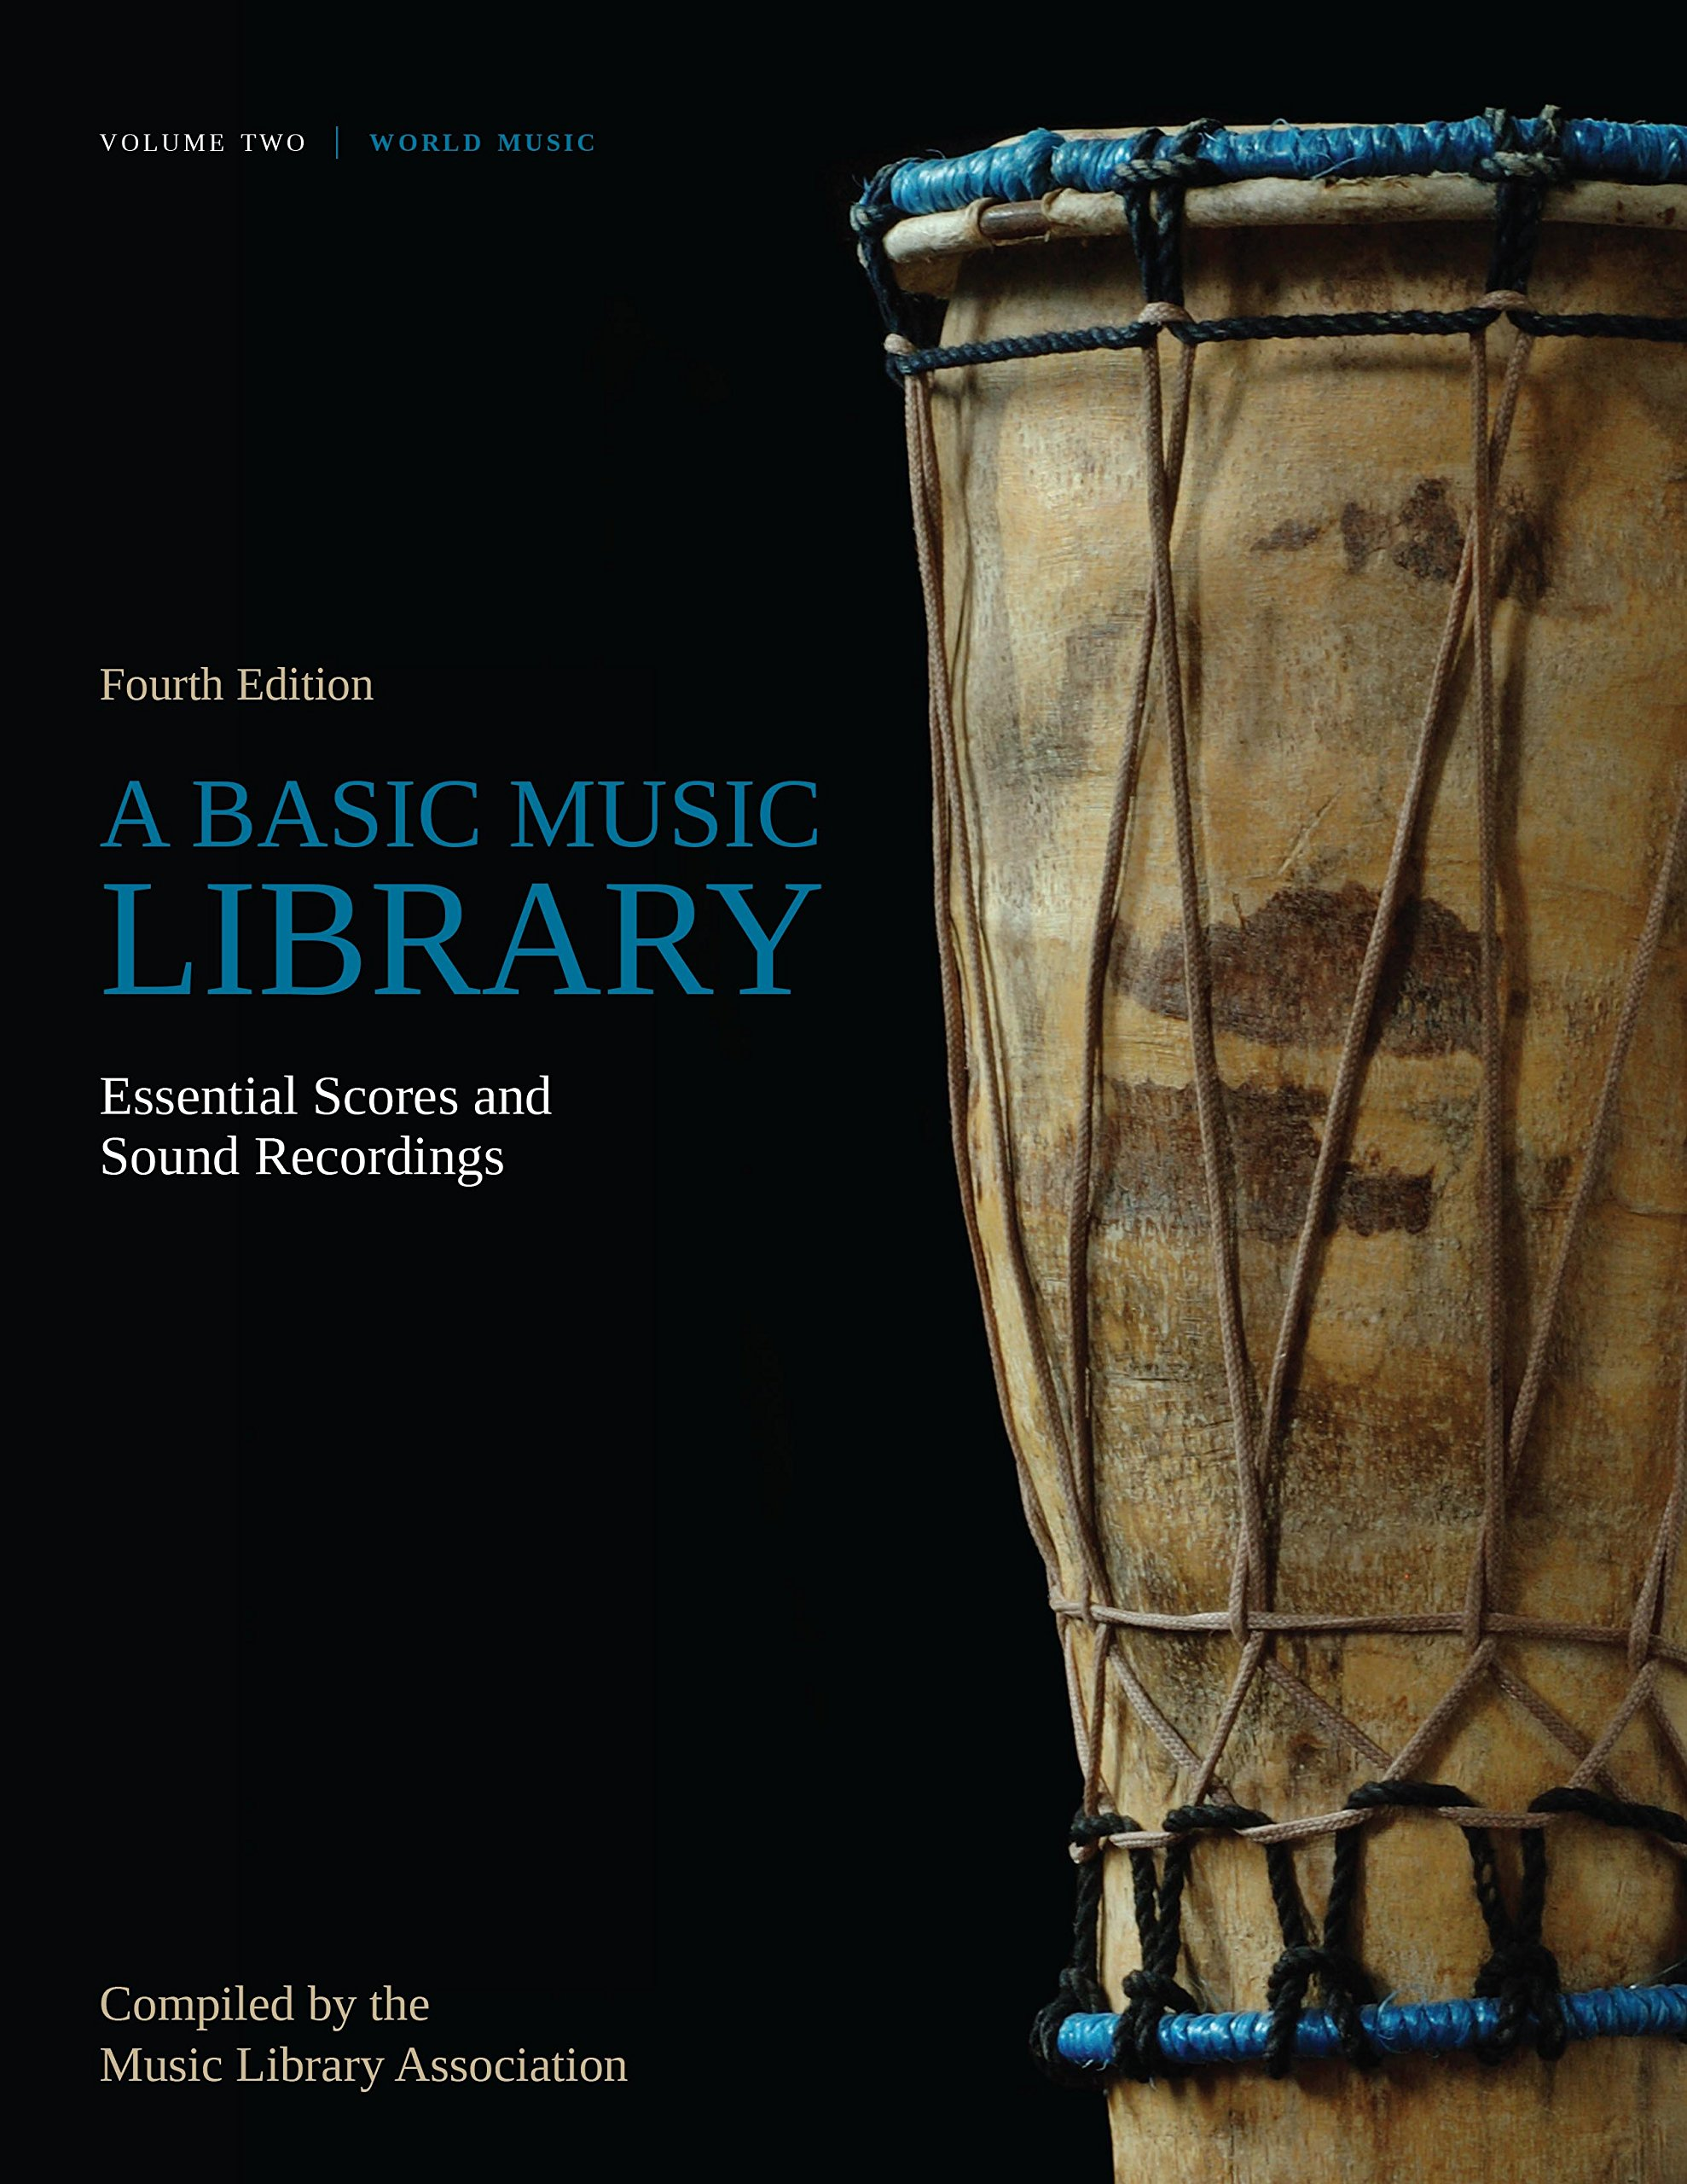 A Basic Music Library: Essential Scores and Sound Recordings, Fourth Edition, Volume 2: World Music by American Library Association